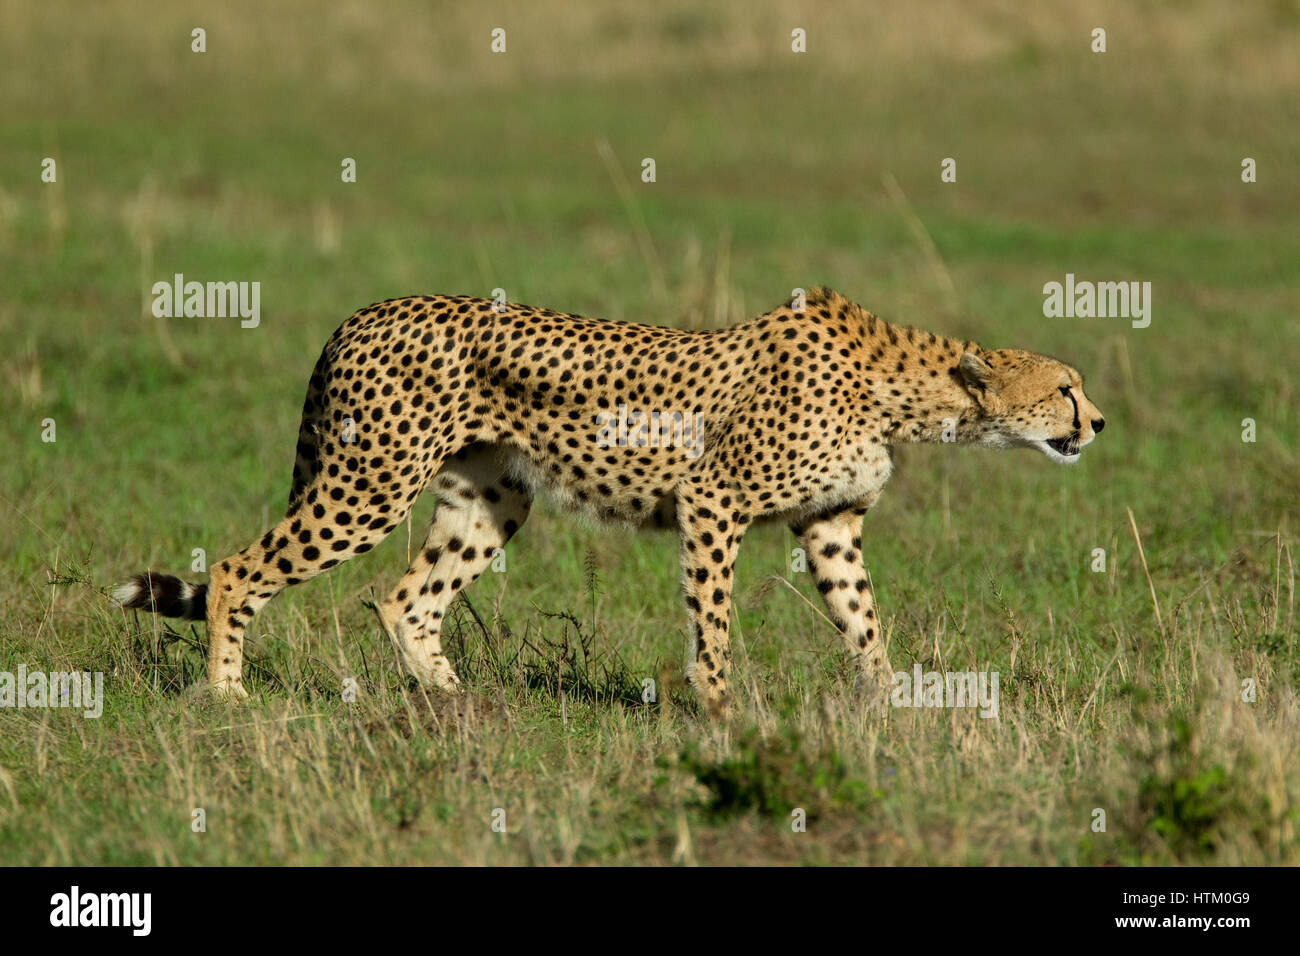 Cheetah (Acinonyx jubatus) on the prowl, Masai Mara National Reserve, Kenya, East Africa - Stock Image